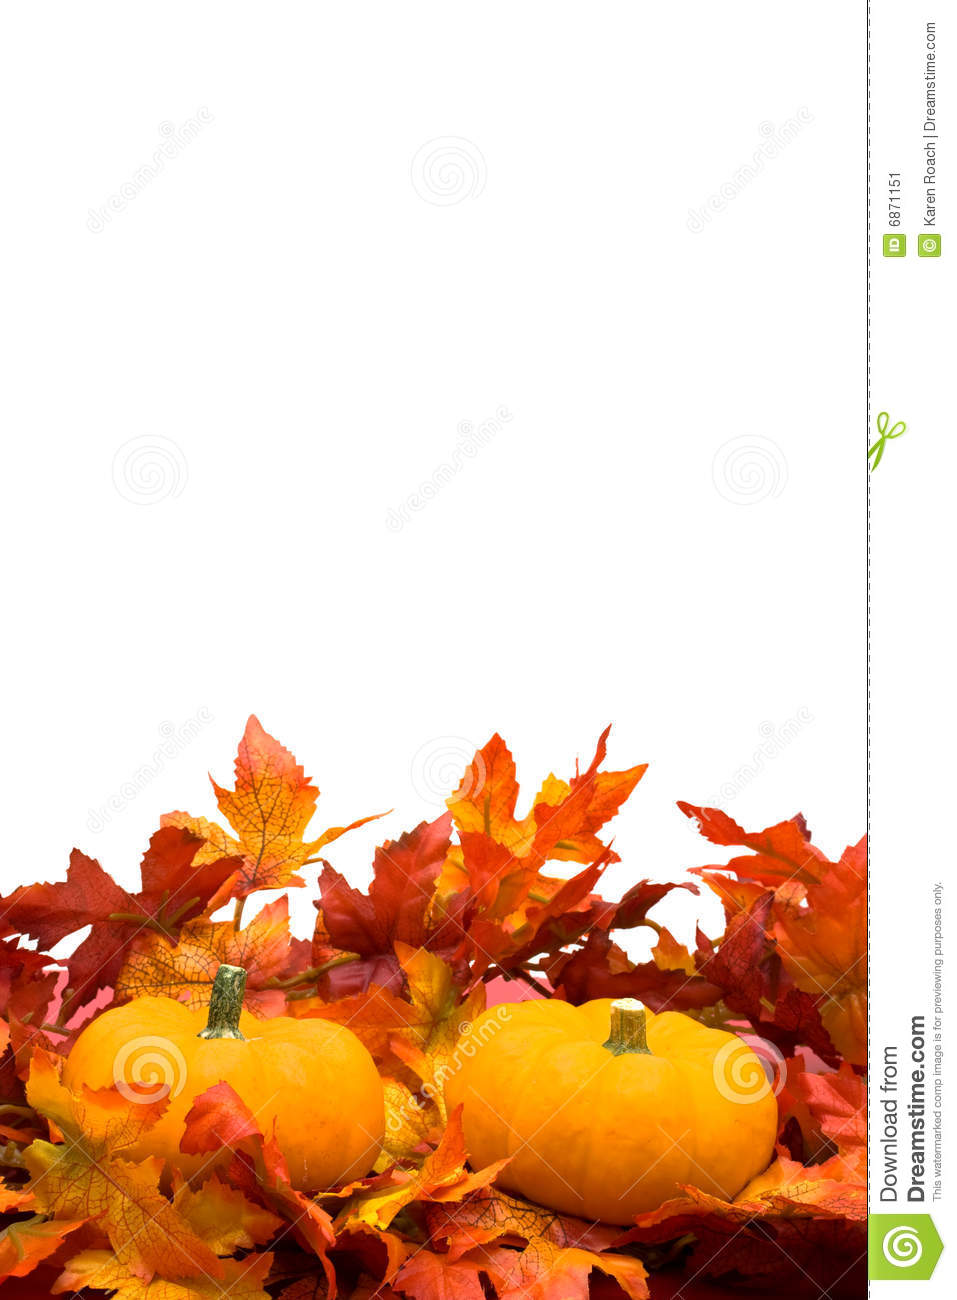 Fall Leaves With Pumpkin On White Background Fall Harvest